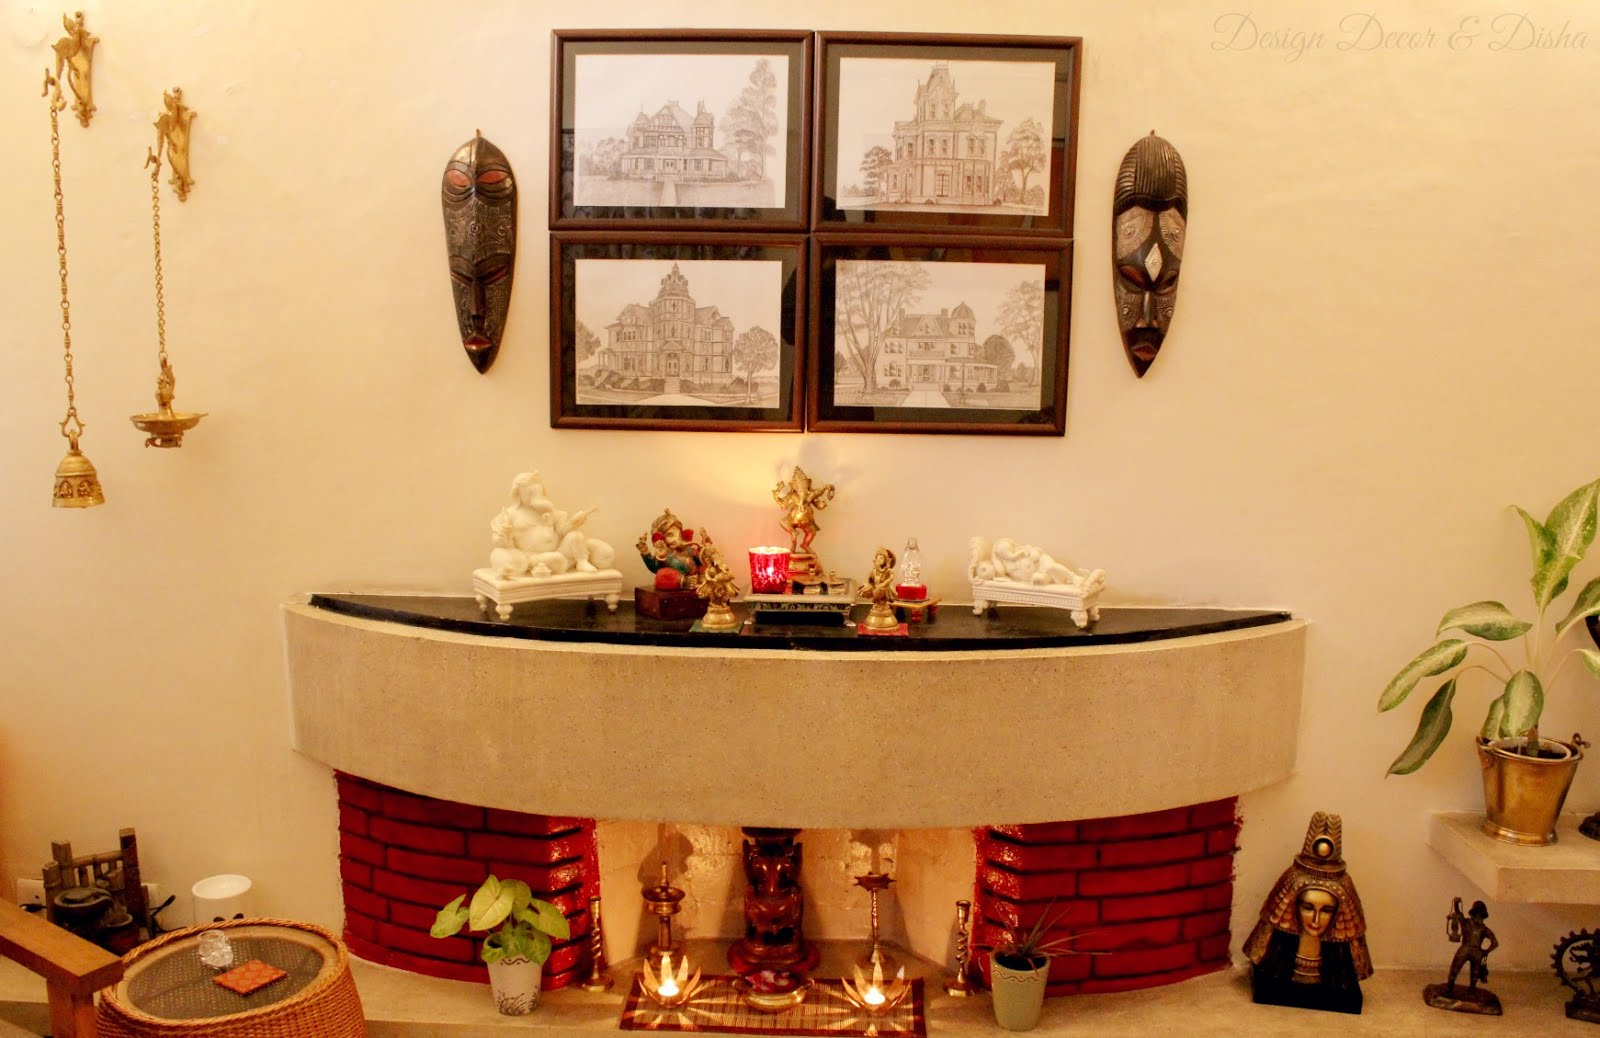 Design decor disha an indian design decor blog home for Home interior design ideas india